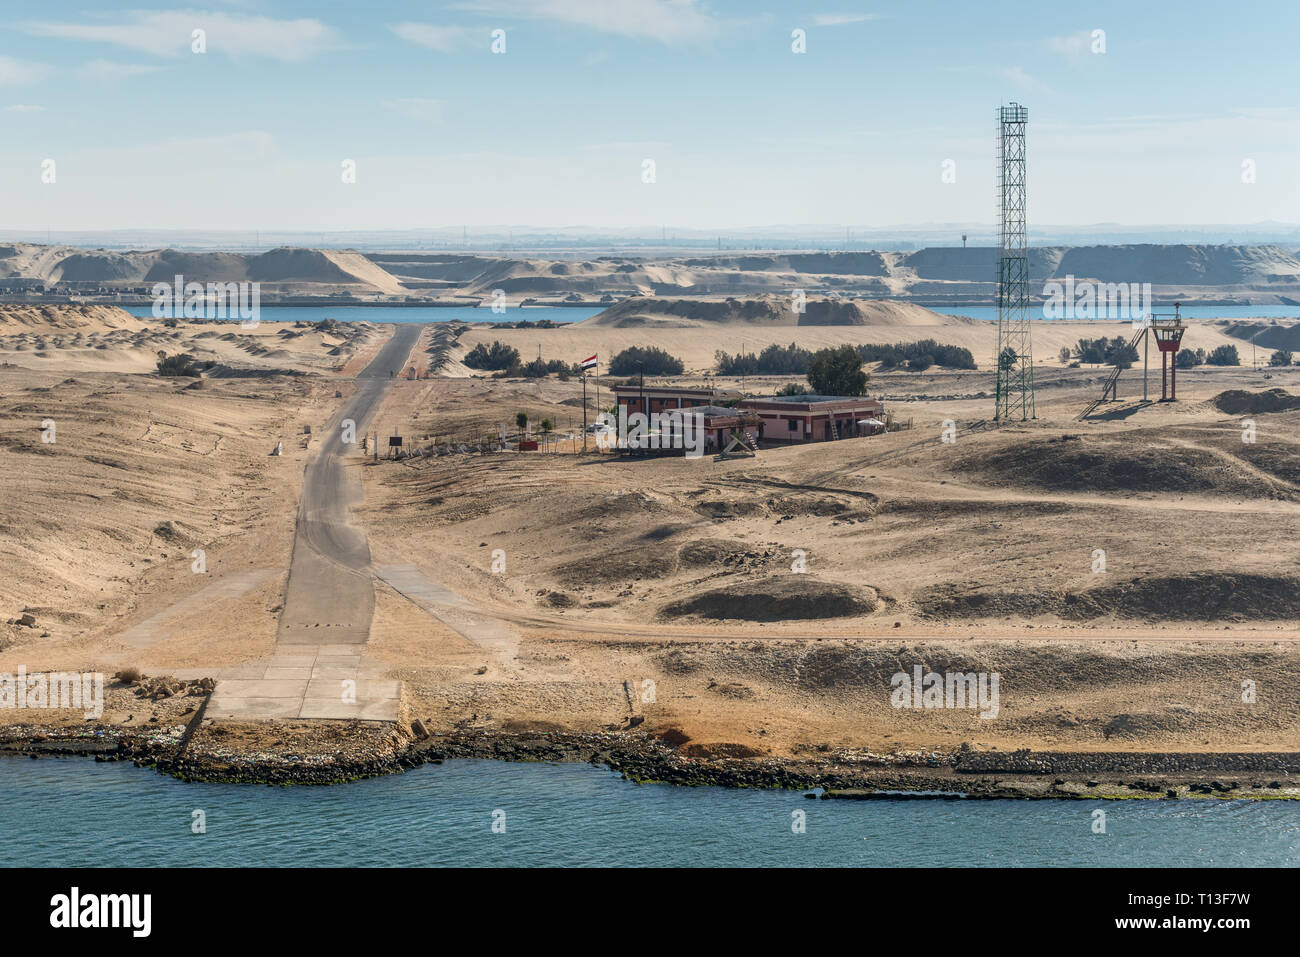 El Ferdan, Egypt - November 5, 2017: Built, communication tower and watch tower on the island in the middle of the Suez Canal near Ismailia, Egypt, Af - Stock Image